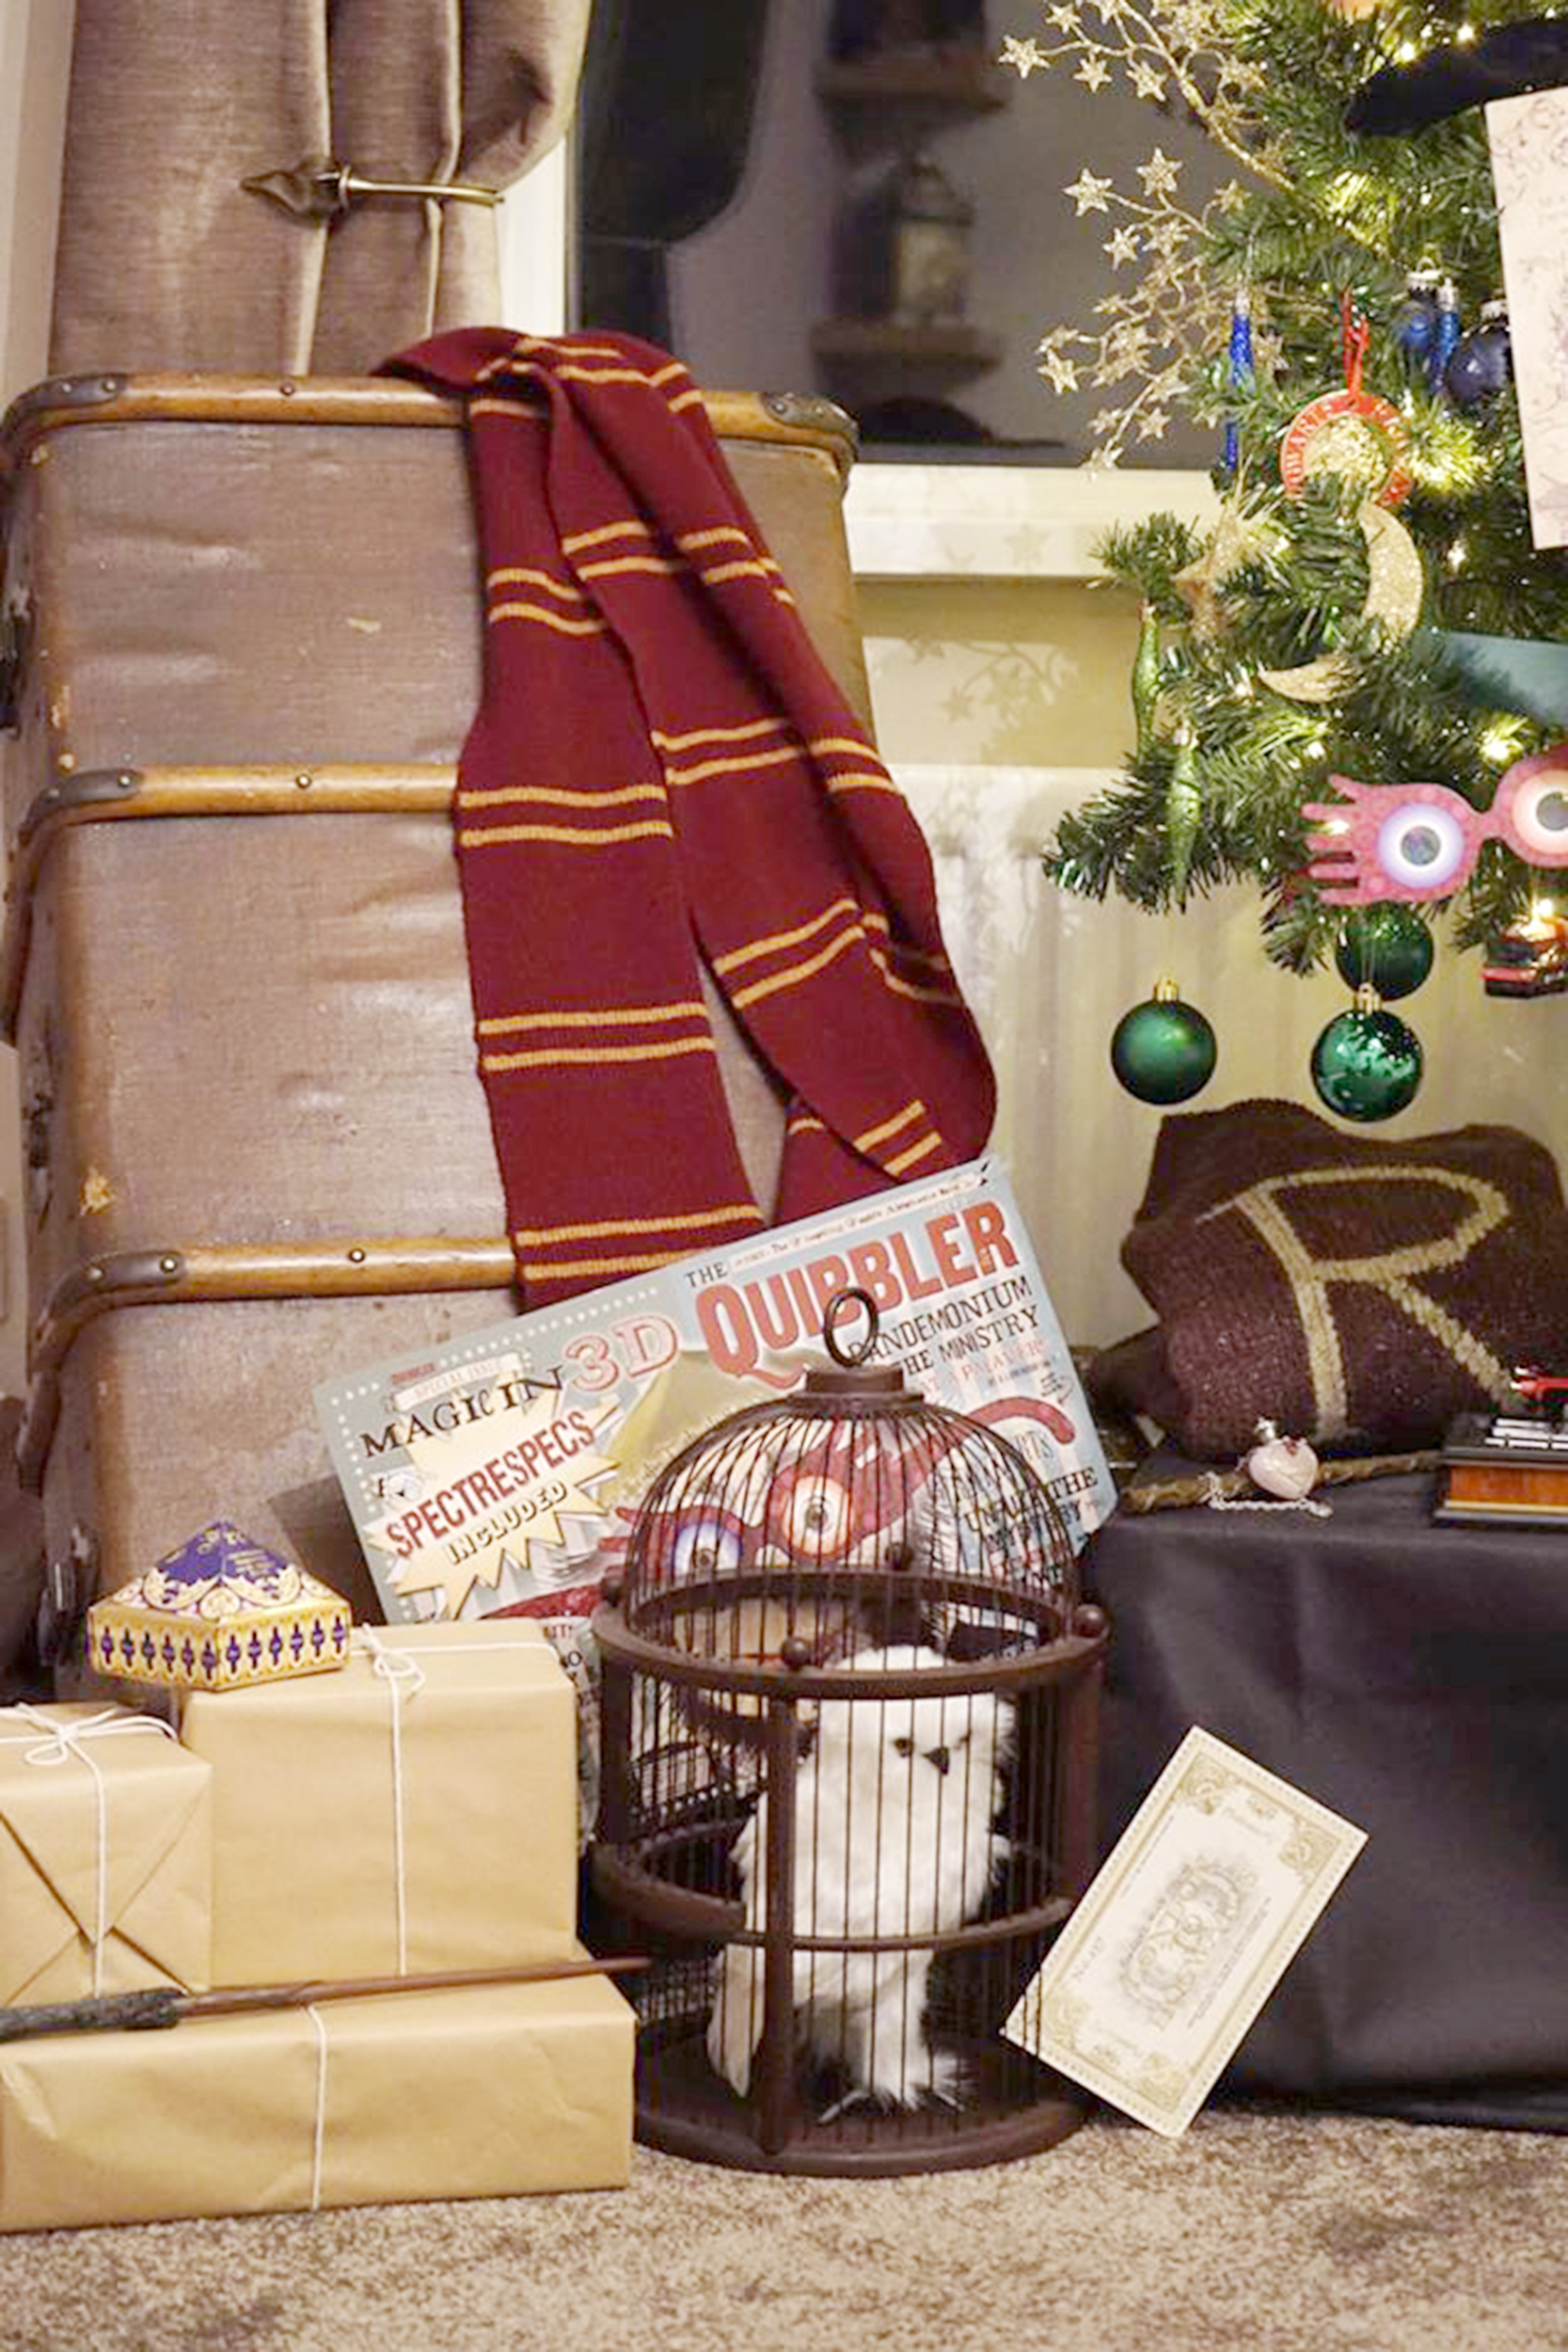 Harry Potter Themed Christmas Tree Decorations